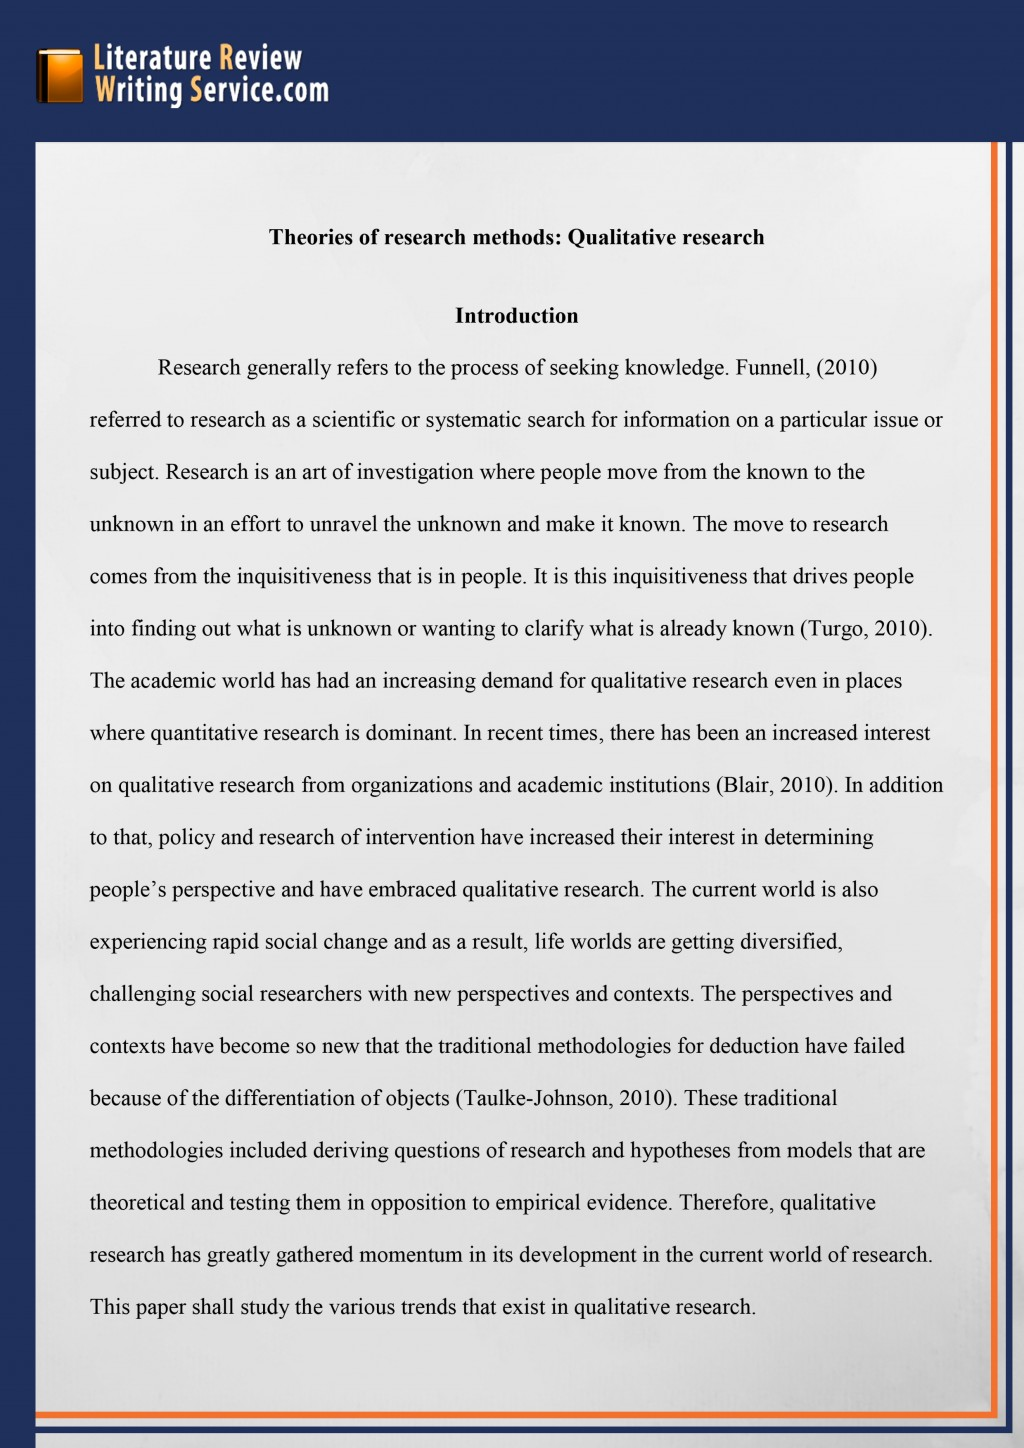 008 Research Paper Example Of An Outline For Literary Professional Dissertation Literature Review Striking A Large